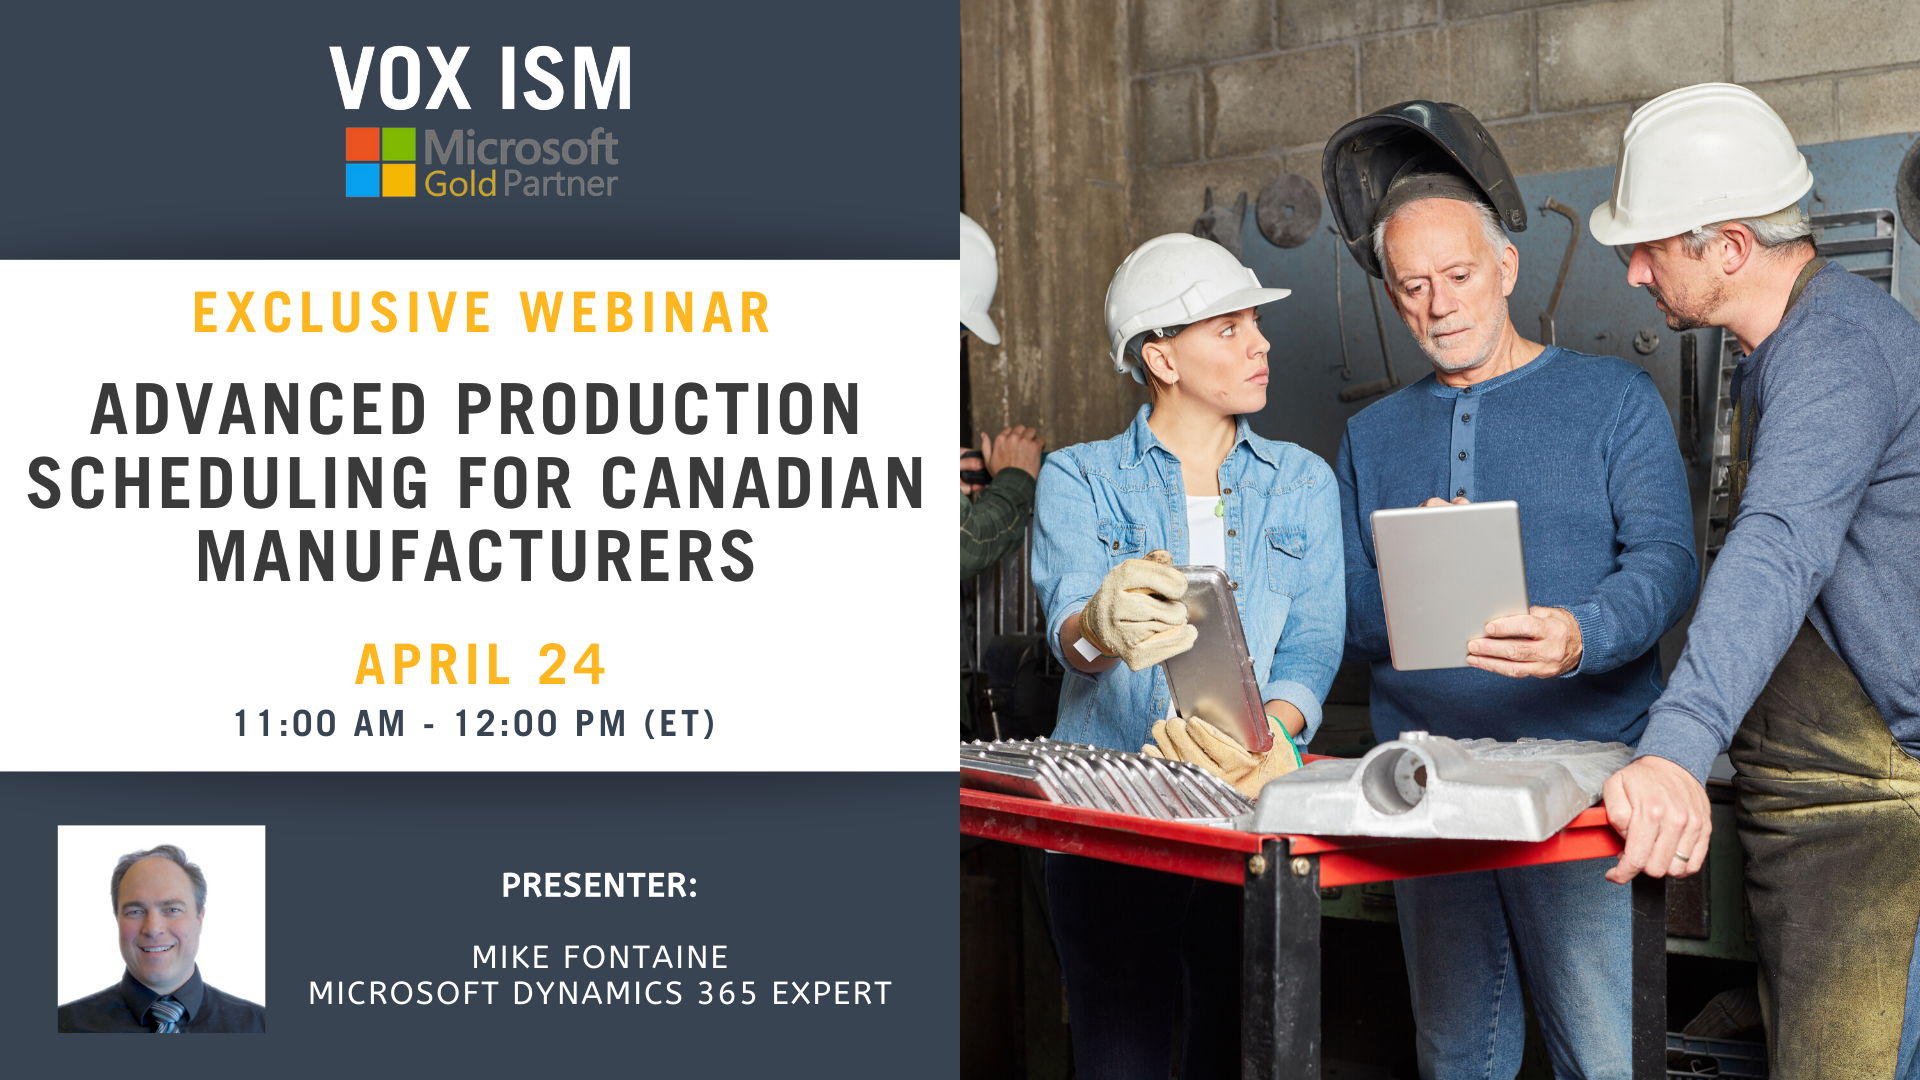 Advanced Production Scheduling for Canadian Manufacturers - April 24 - Webinar_VOX ISM